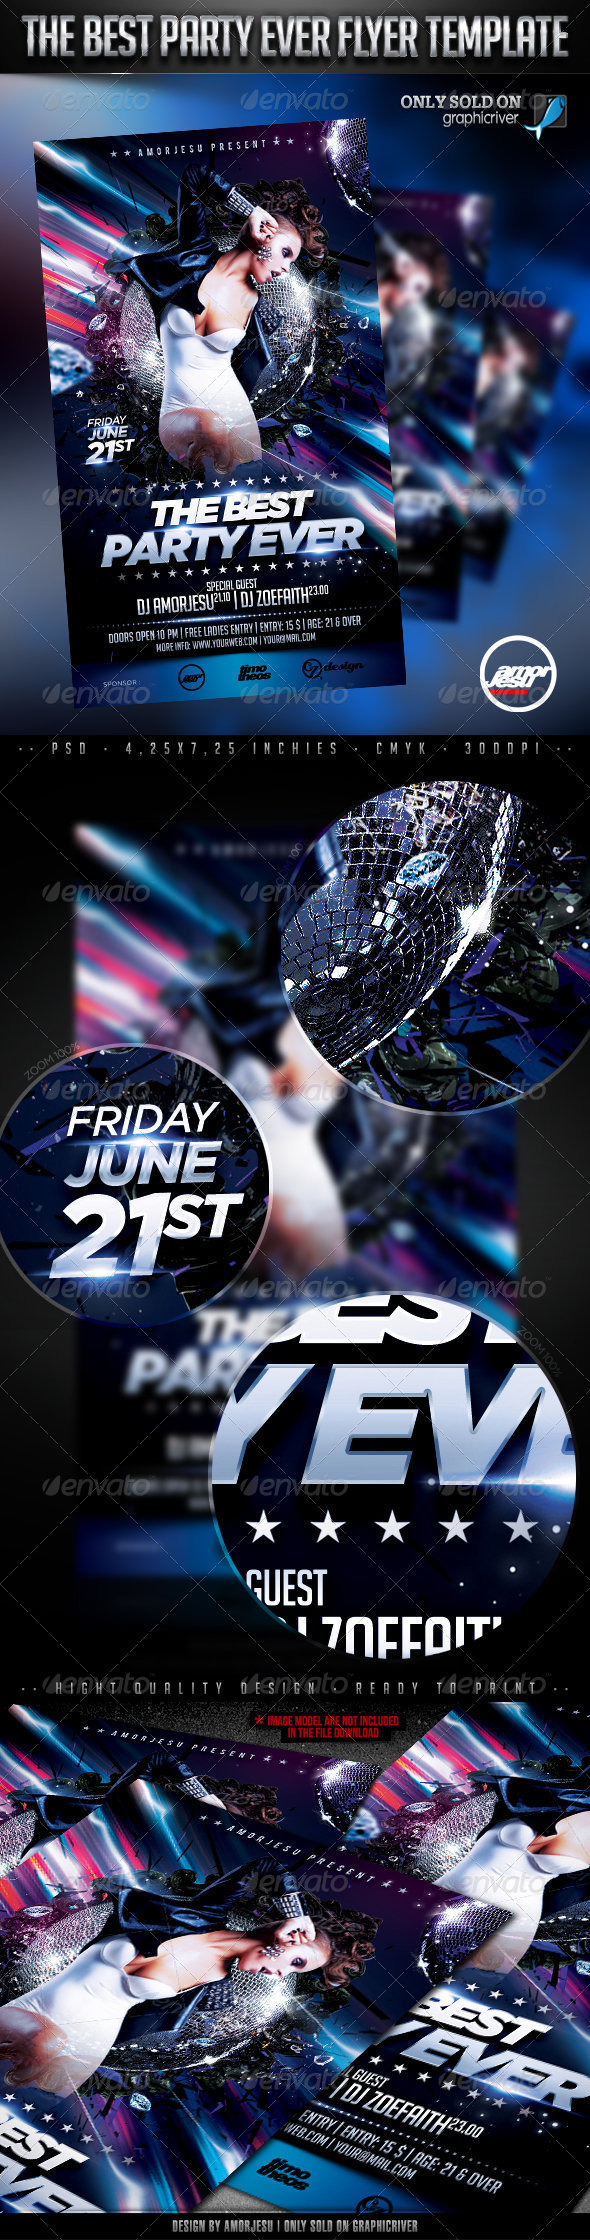 The Best Party Ever Flyer Template - Clubs & Parties Events